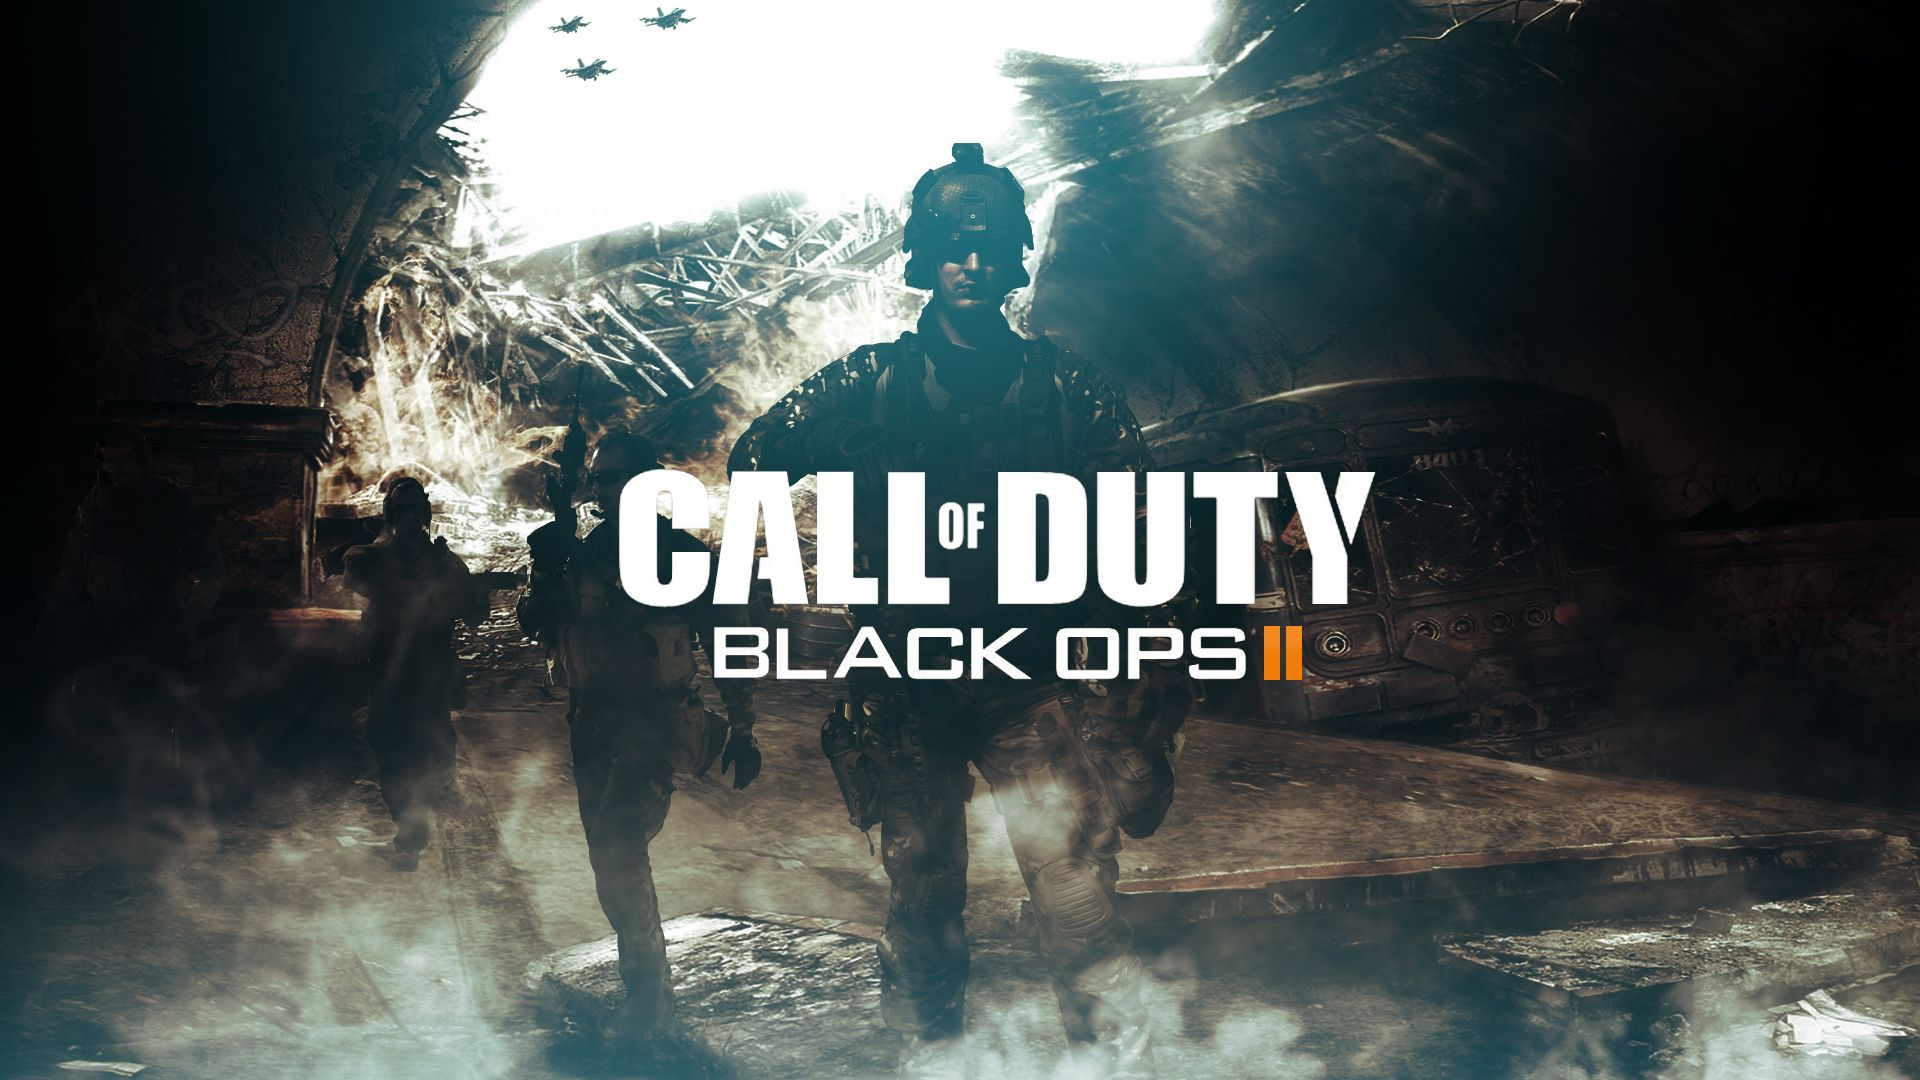 Call Of Duty Black Ops Ii Die Hard Scenario Wiki Fandom